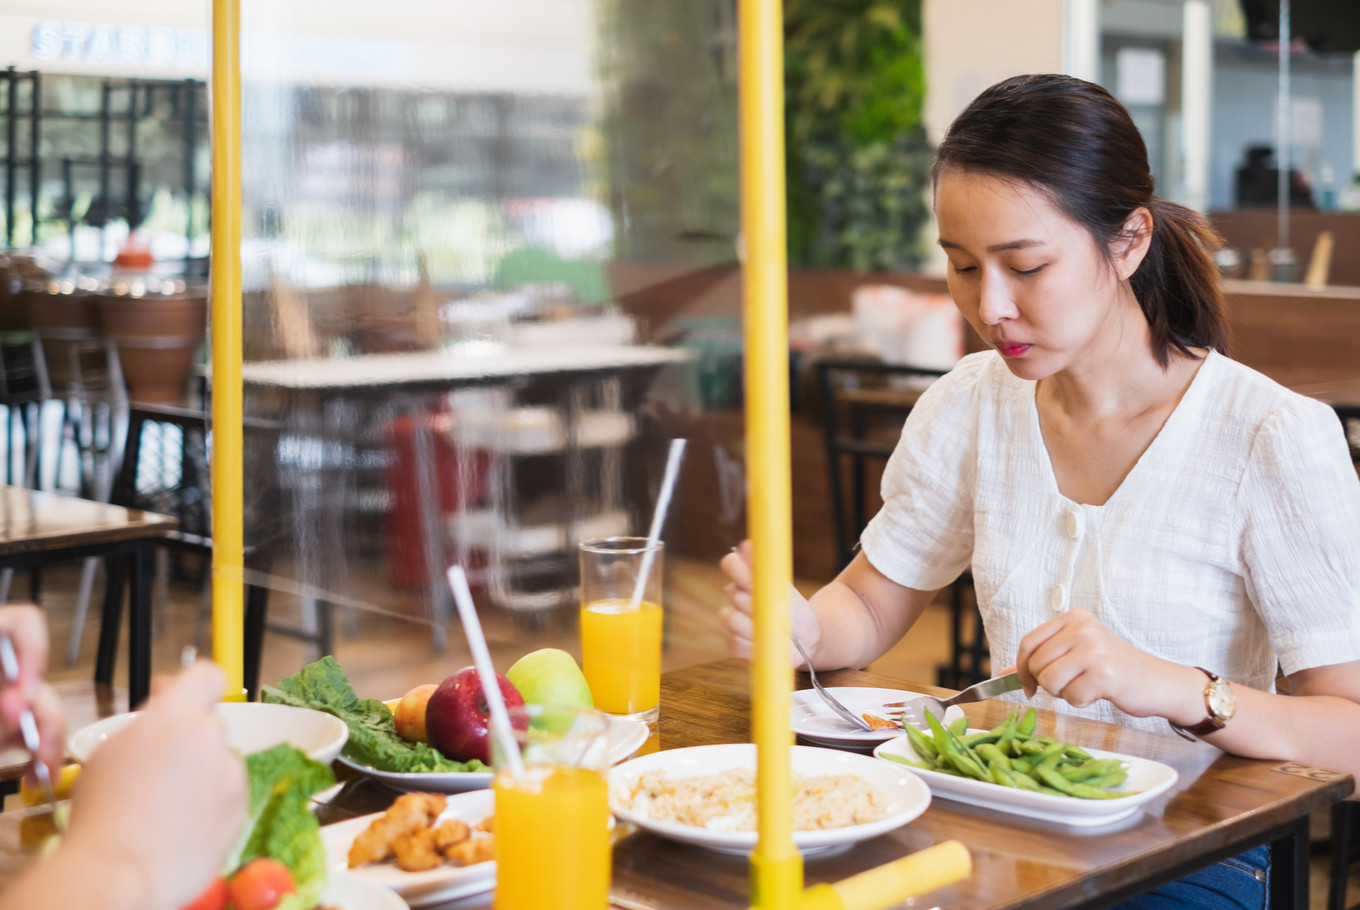 Social Distancing 5 Safety Precautions Restaurants Should Take With COVID 19